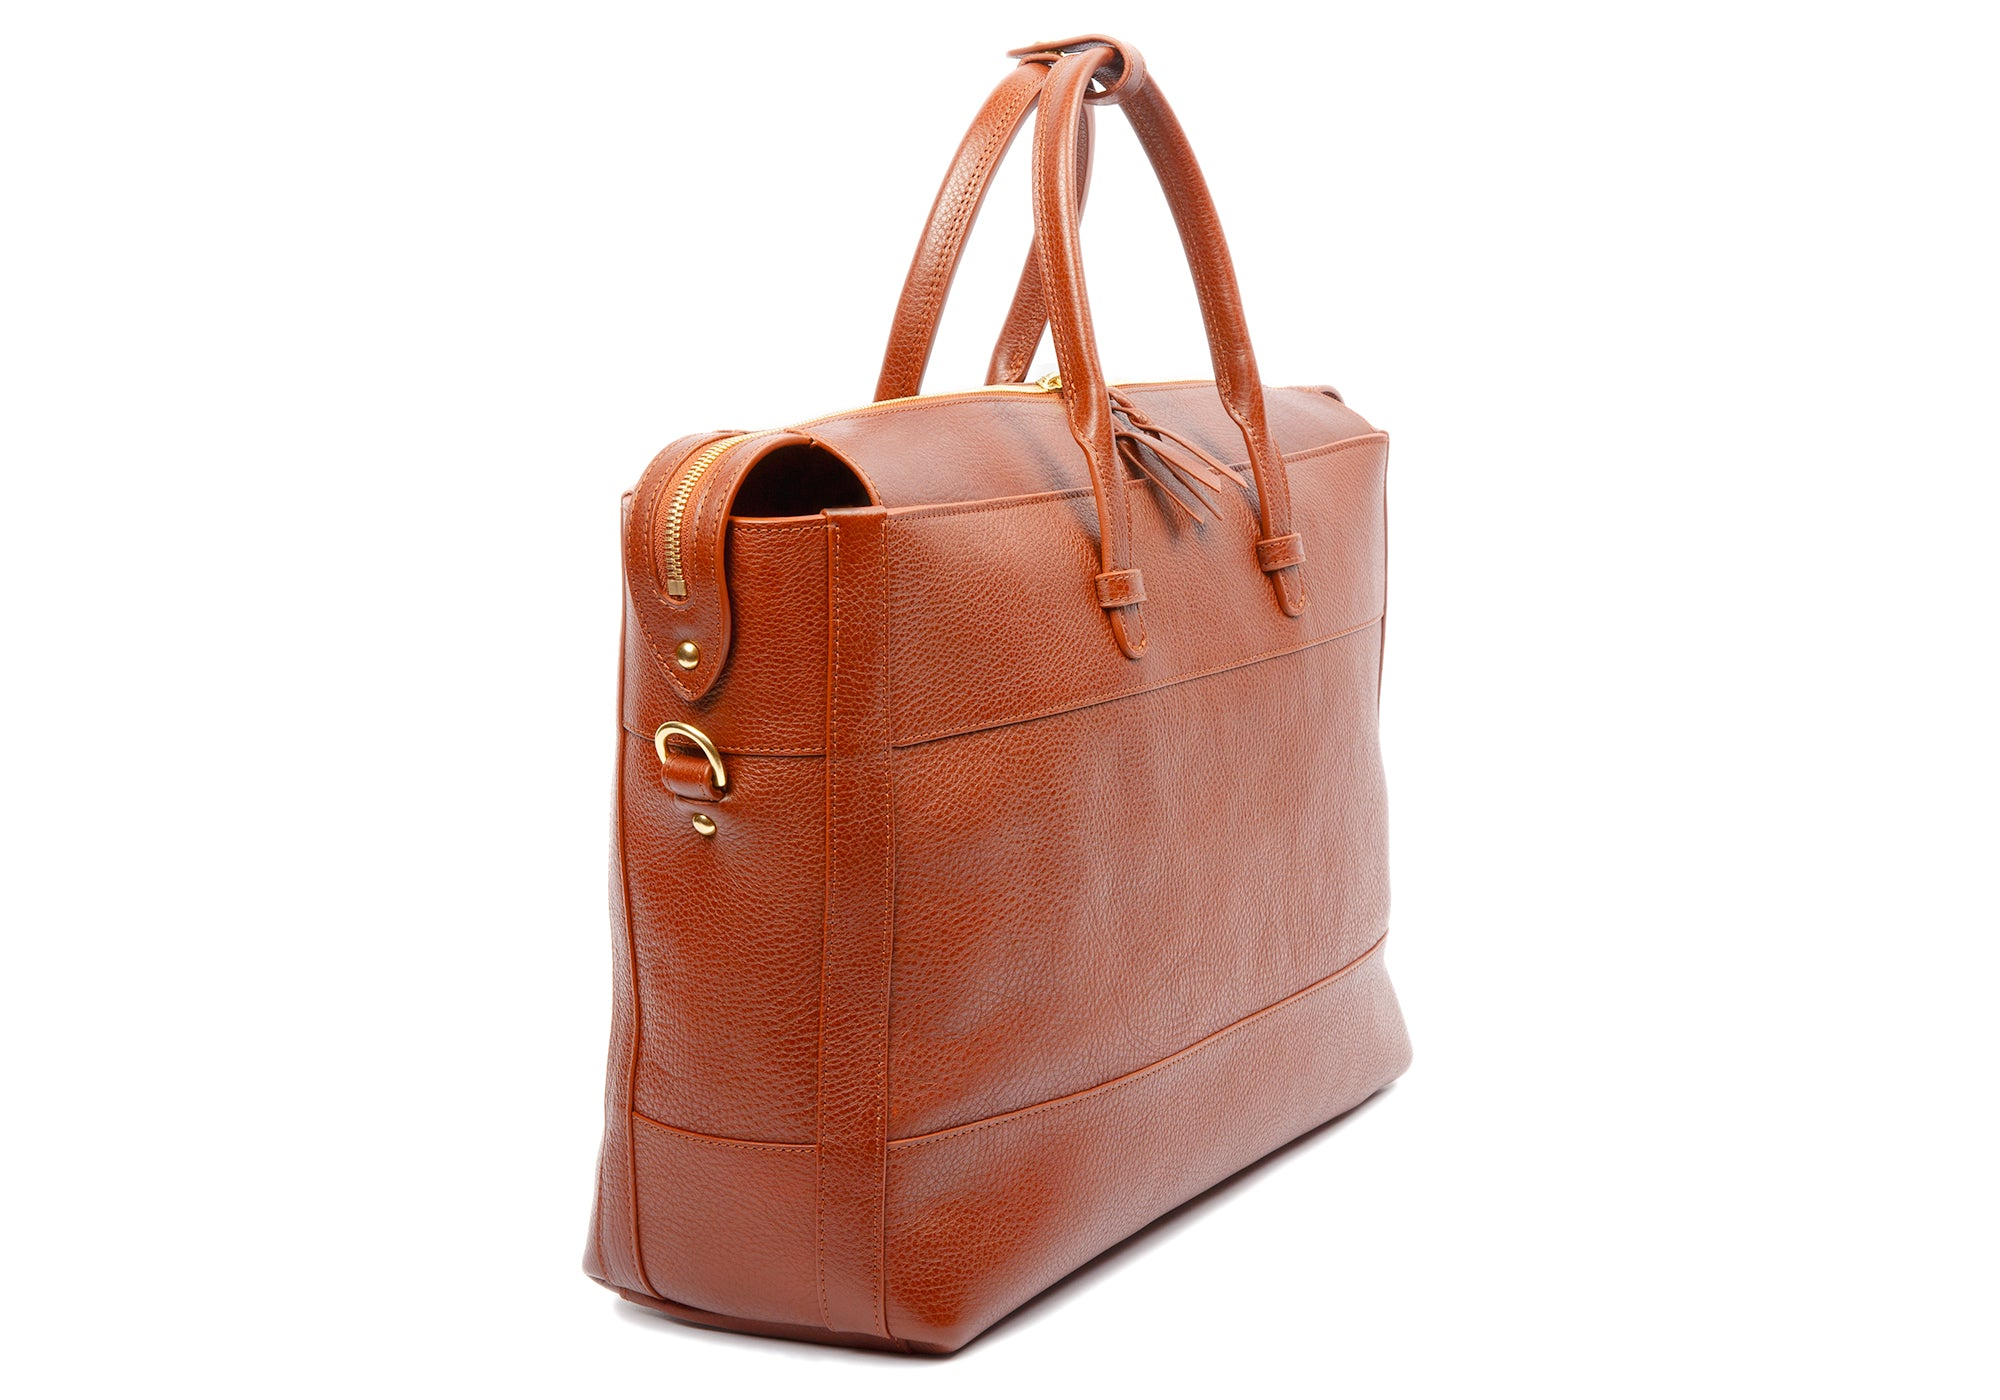 The 929 Briefcase Saddle Tan